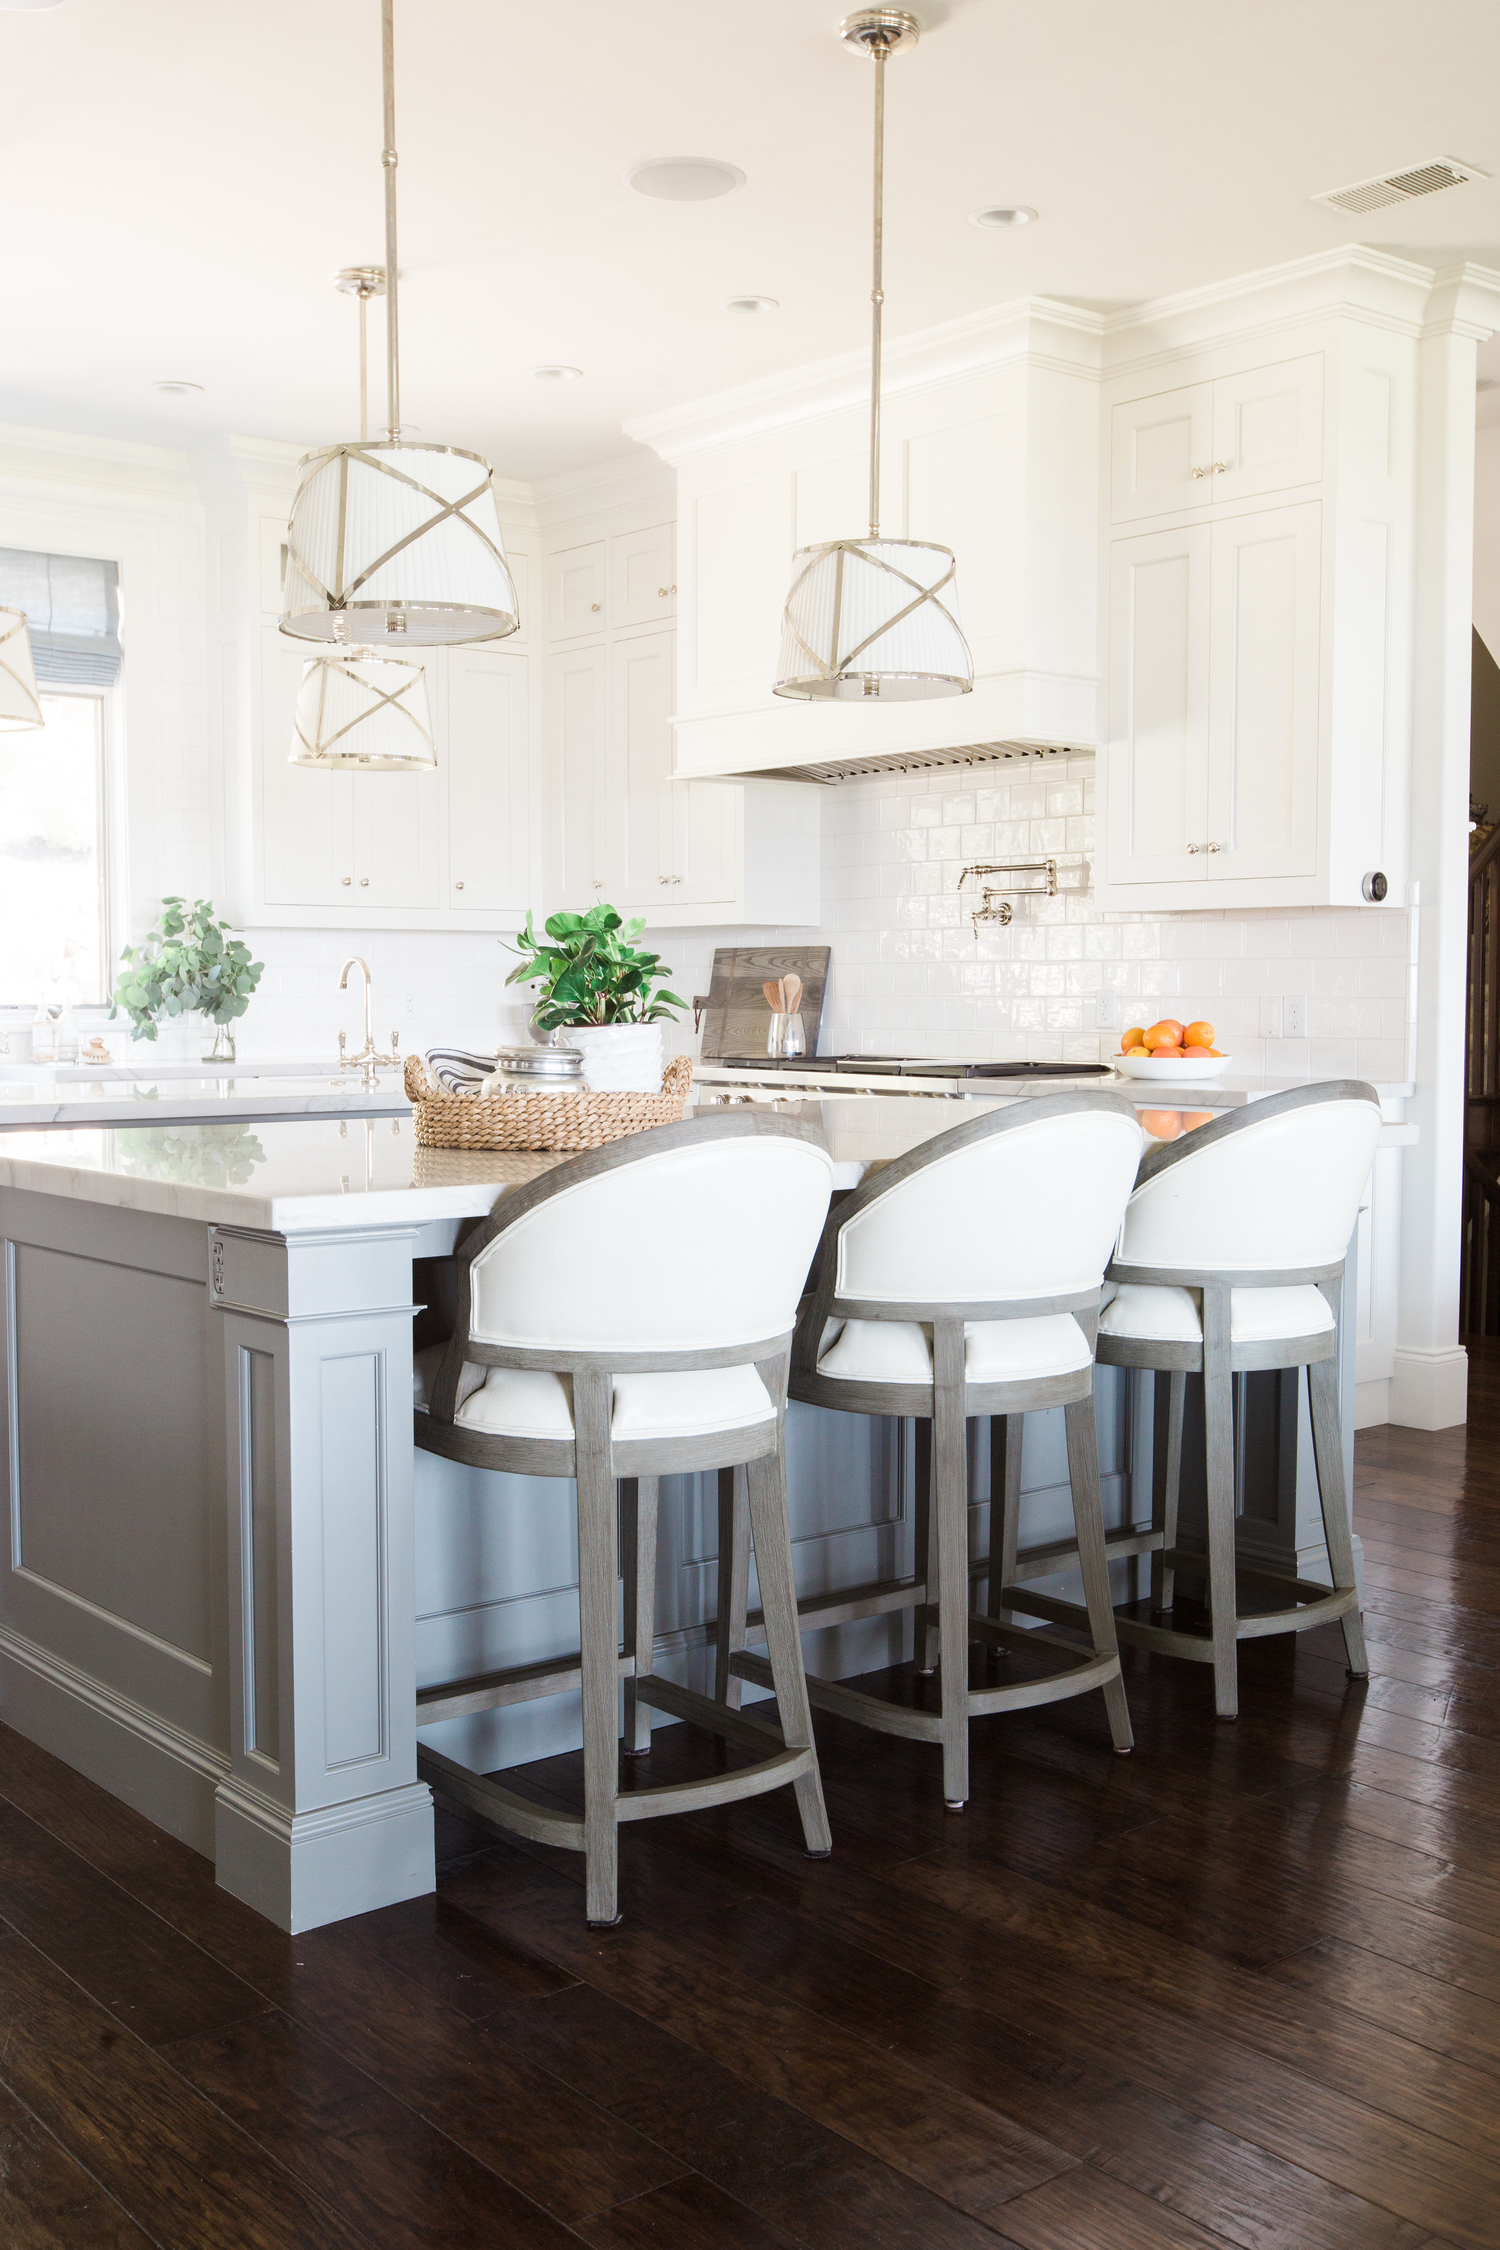 kitchen stools with backs changing countertops in mountainside remodel — studio mcgee